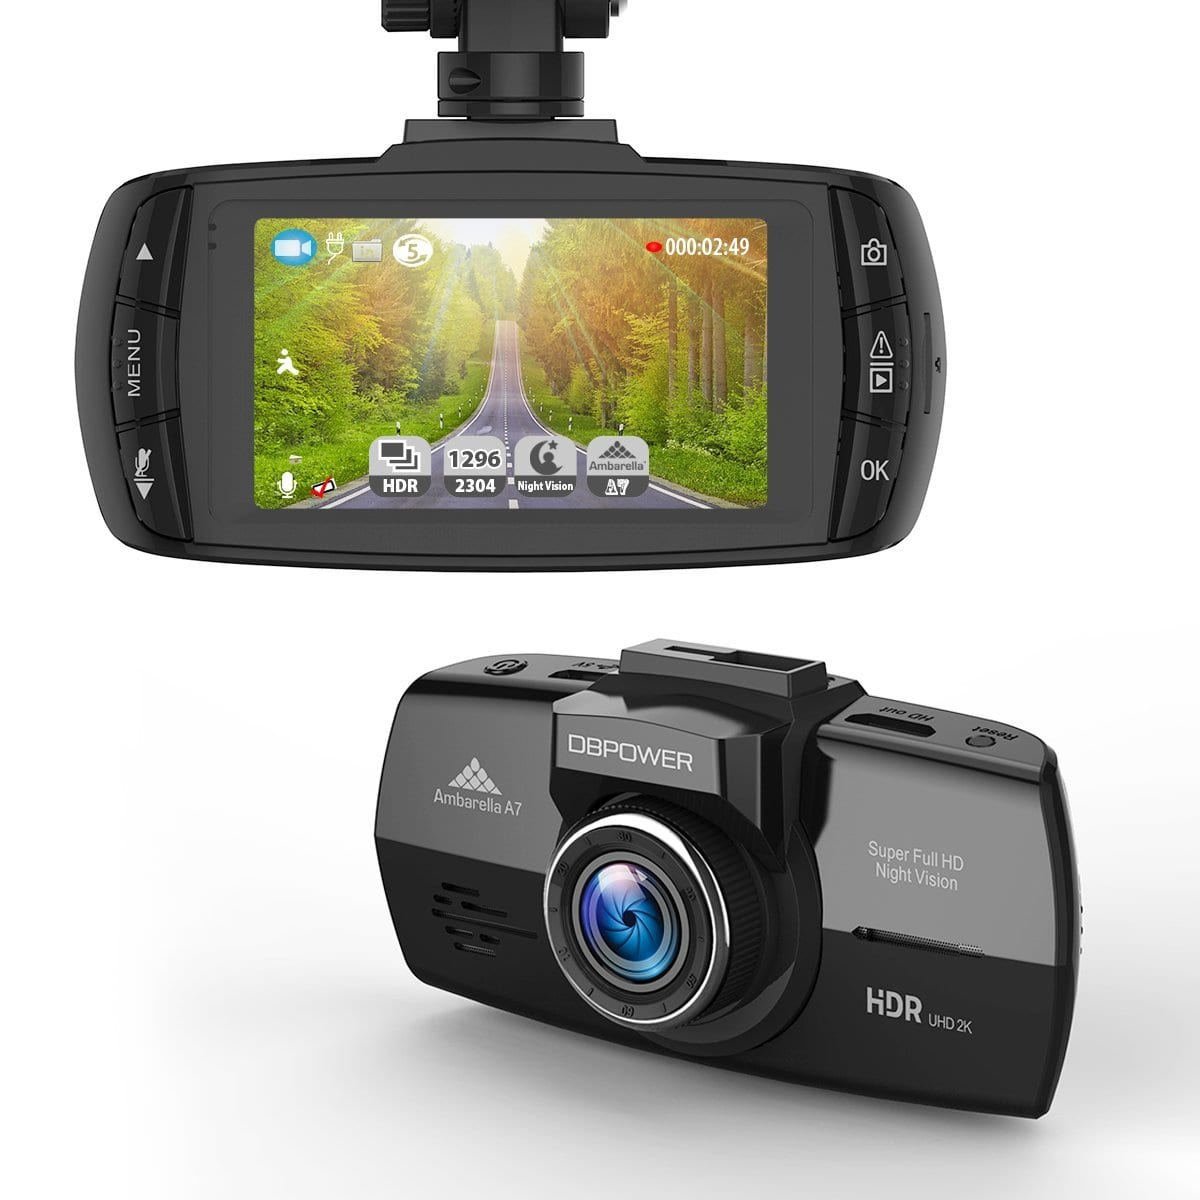 urlhasbeenblocked 2K FHD DVR 2.7-Inch LCD 150 Degree Wide Angle Dash Cam with G-Sensor, Loop Recording, HDR, Night Vision - $29.99 FS